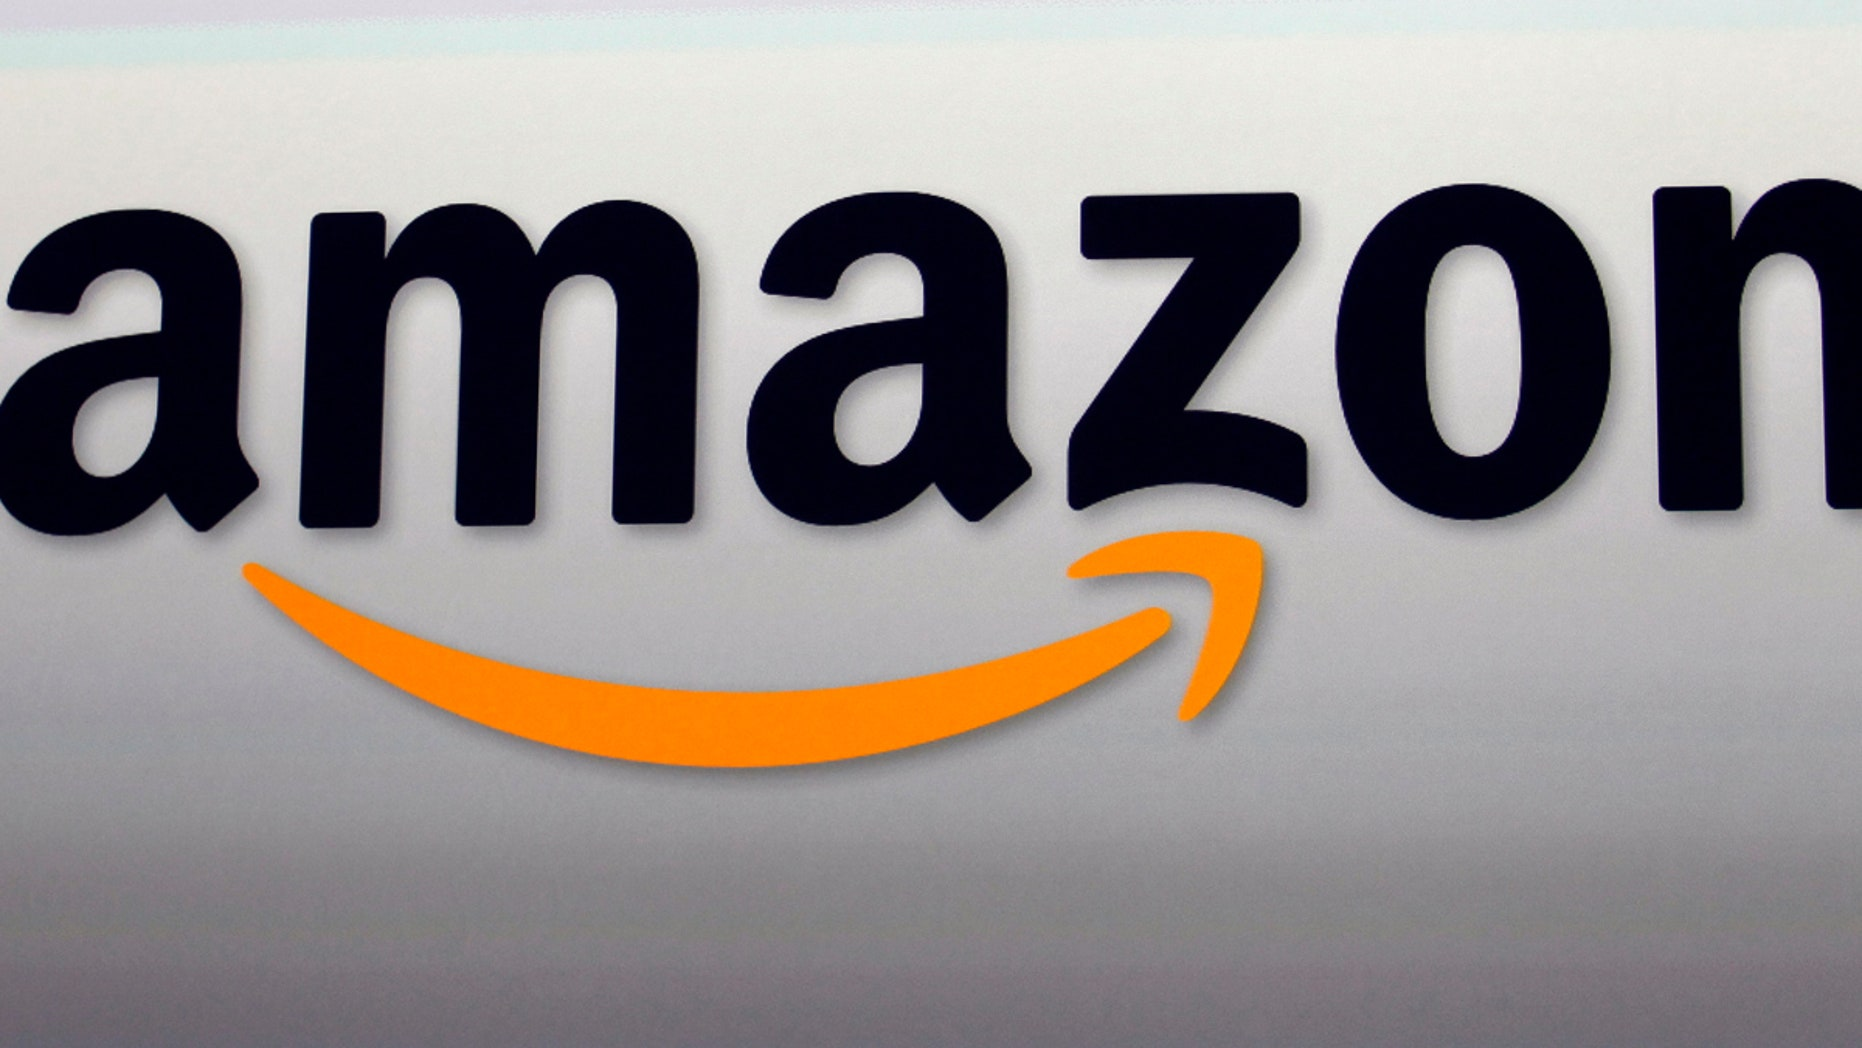 FILE - This Sept. 6, 2012, file photo, shows the Amazon logo in Santa Monica, Calif. Amazon will block Australians from buying from its international e-commerce websites and restrict them to a smaller local platform from July in response to new tax rules that consumer advocates fear will reduce the range of choice for customers in Australia, Amazon said in a statement on Friday June 1, 2018. (AP Photo/Reed Saxon, File)